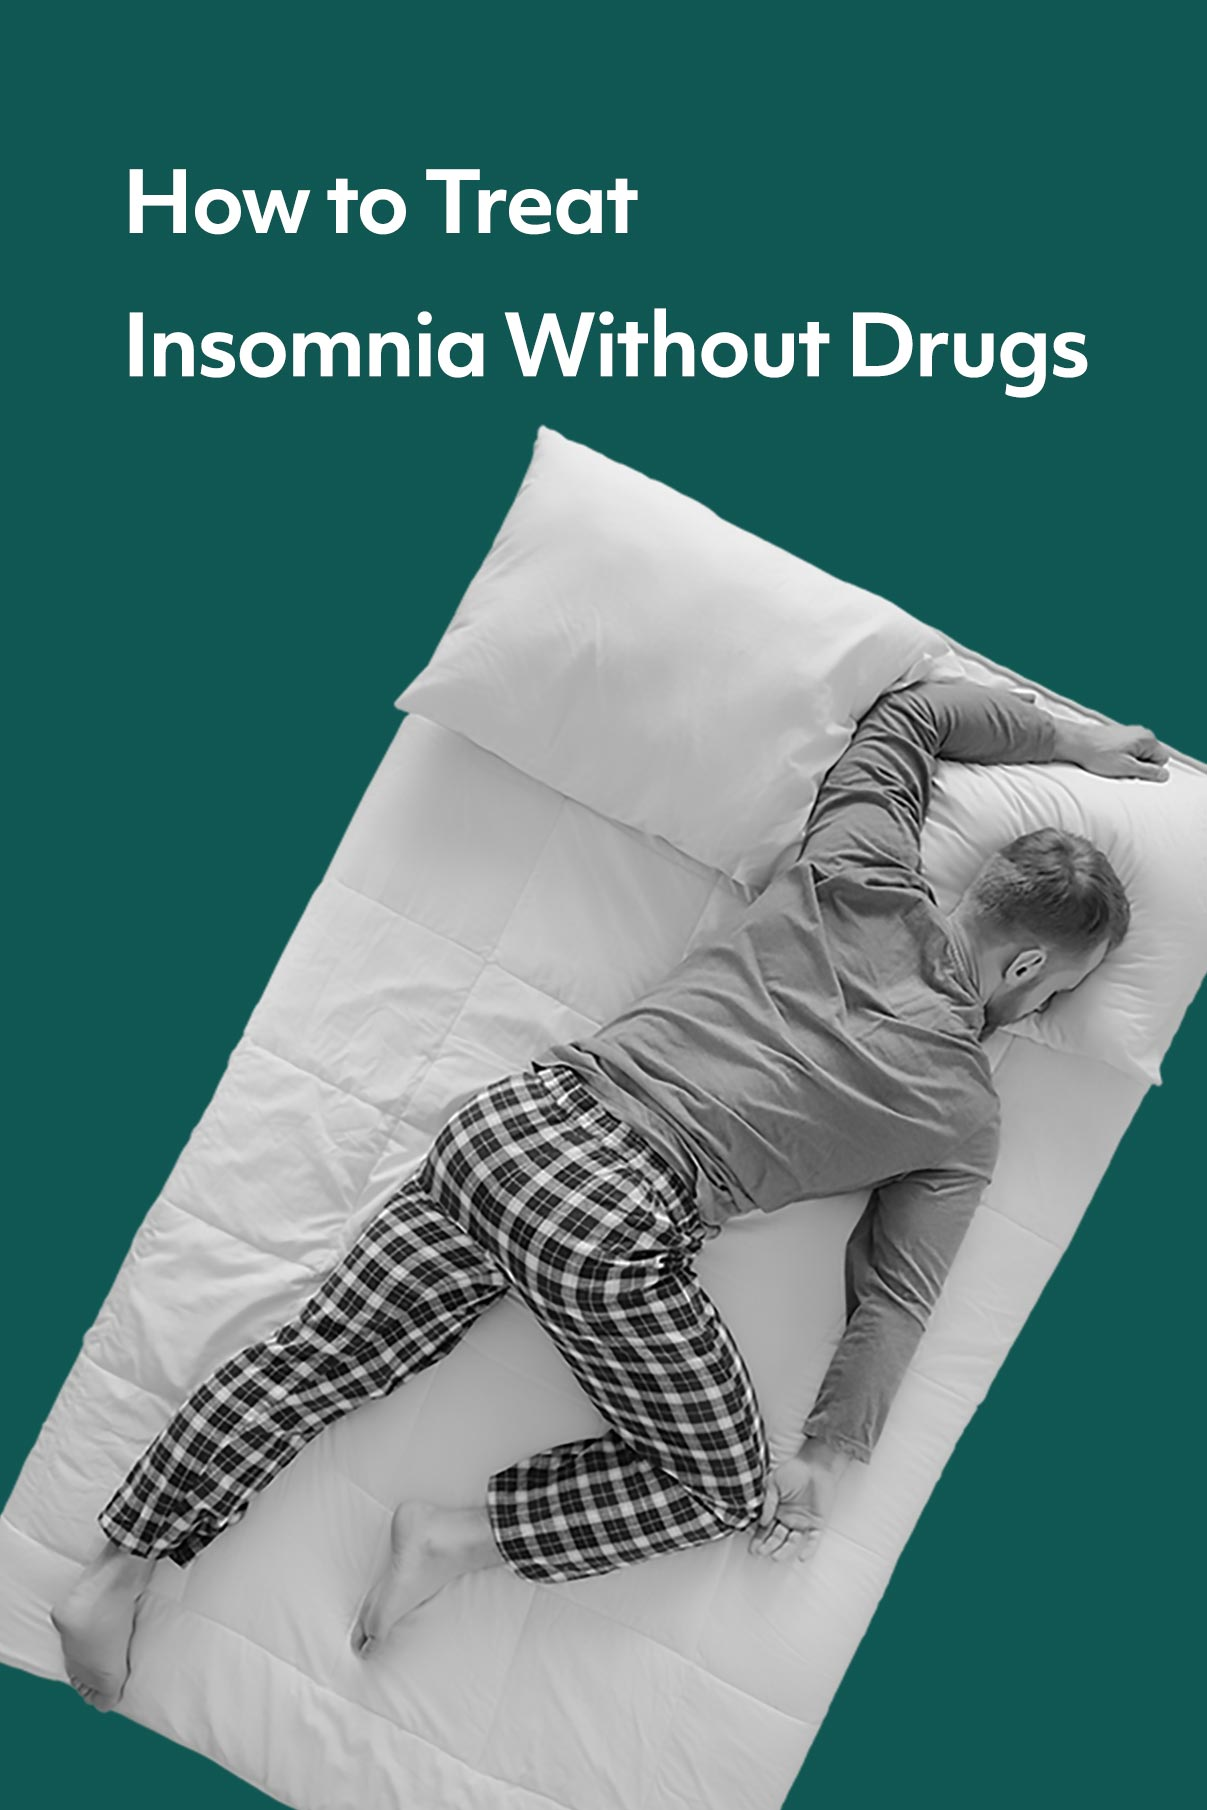 Treating insomnia without drugs